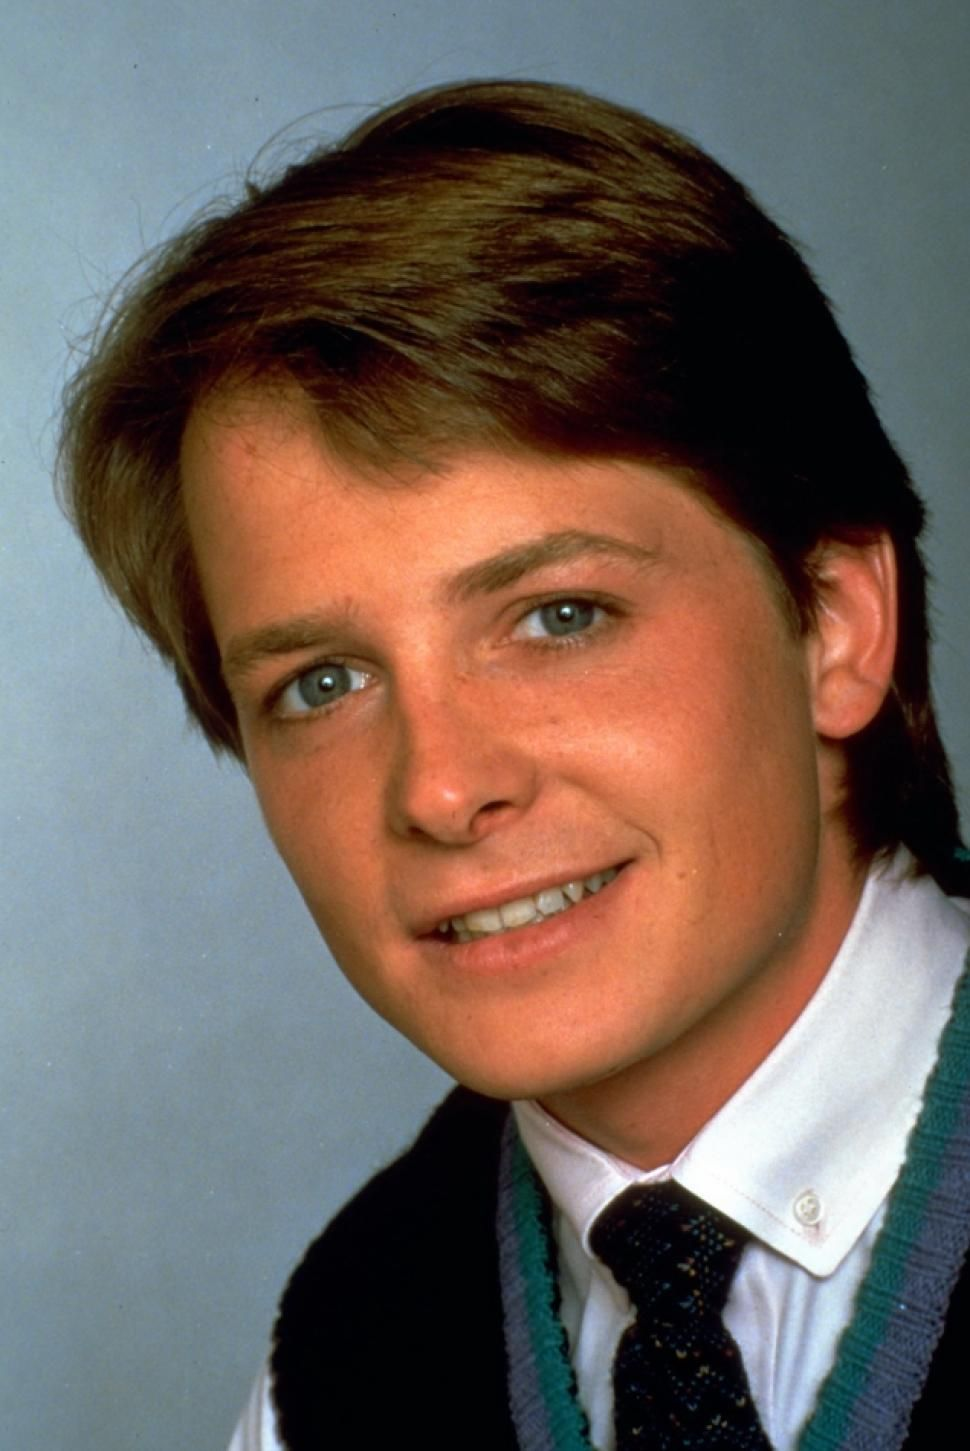 Michael j fox sexy photos